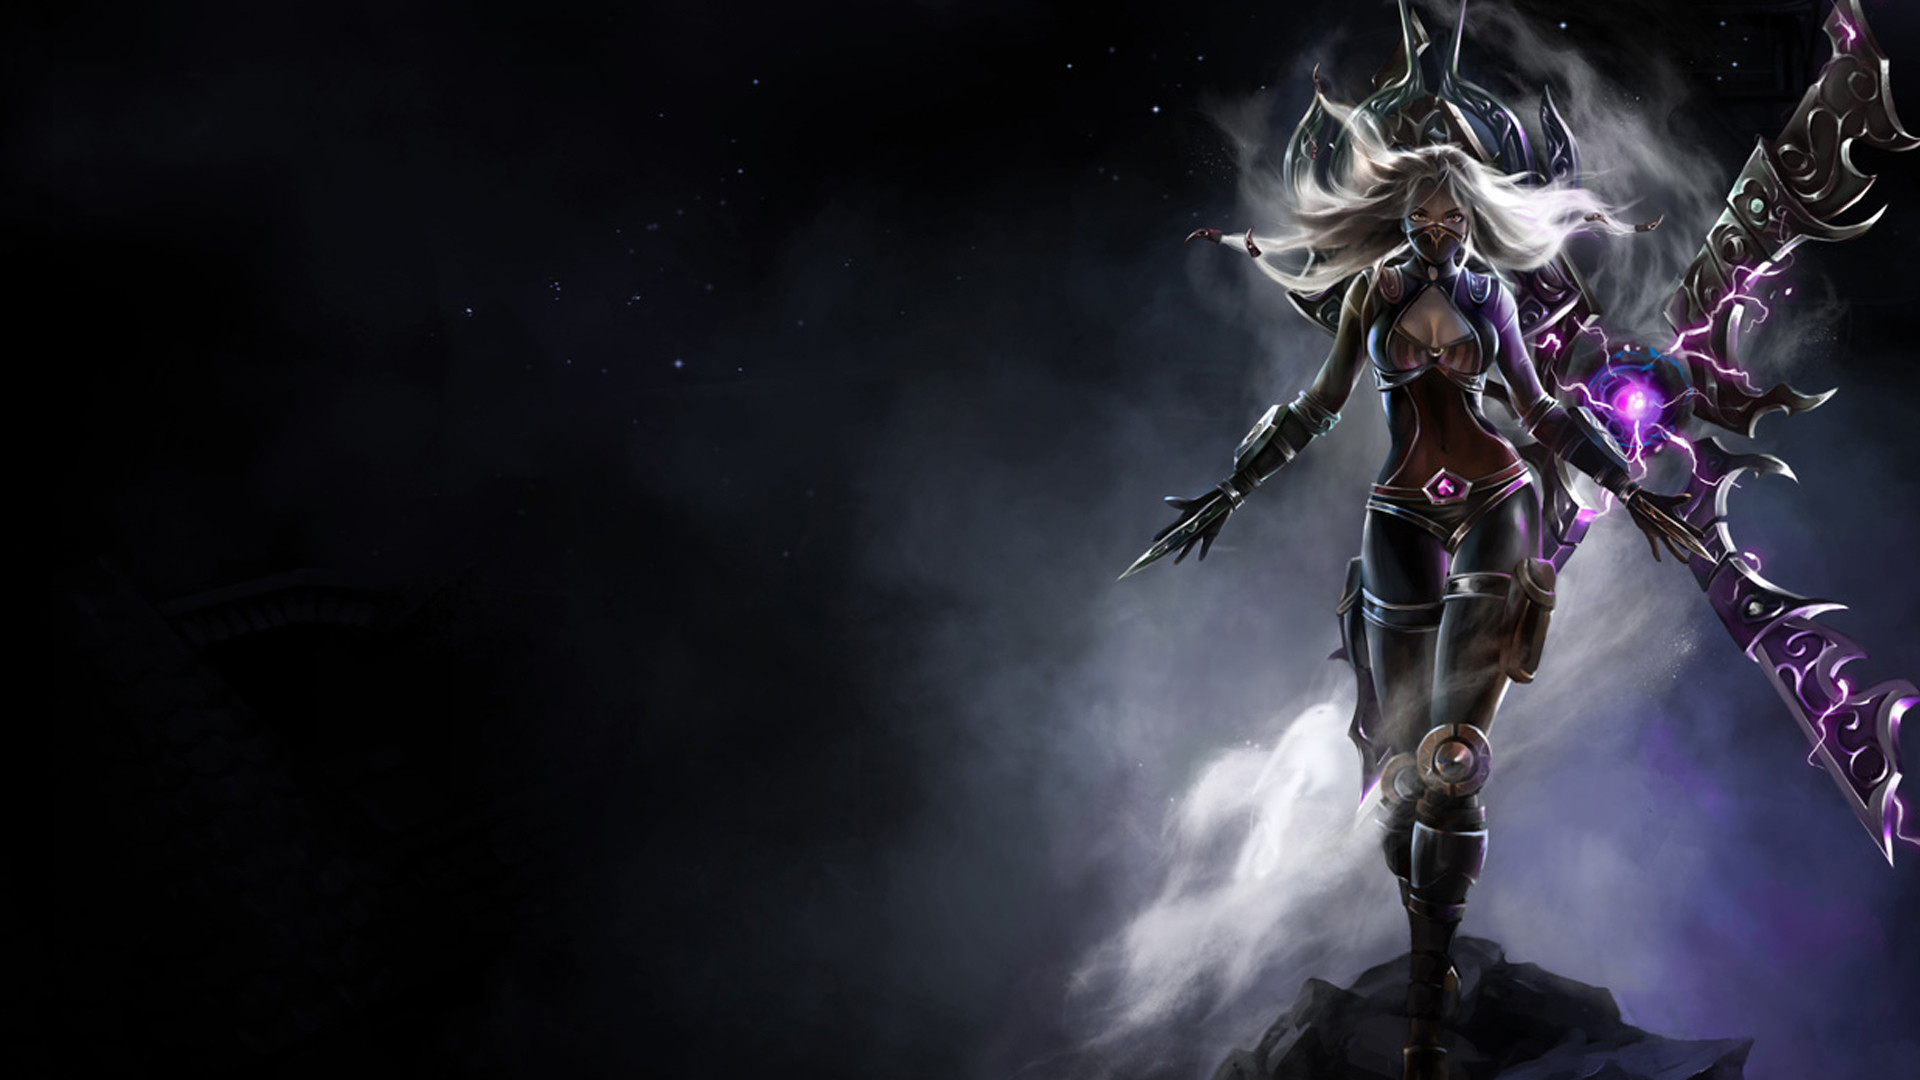 41 Irelia (League Of Legends) HD Wallpapers | Backgrounds – Wallpaper Abyss